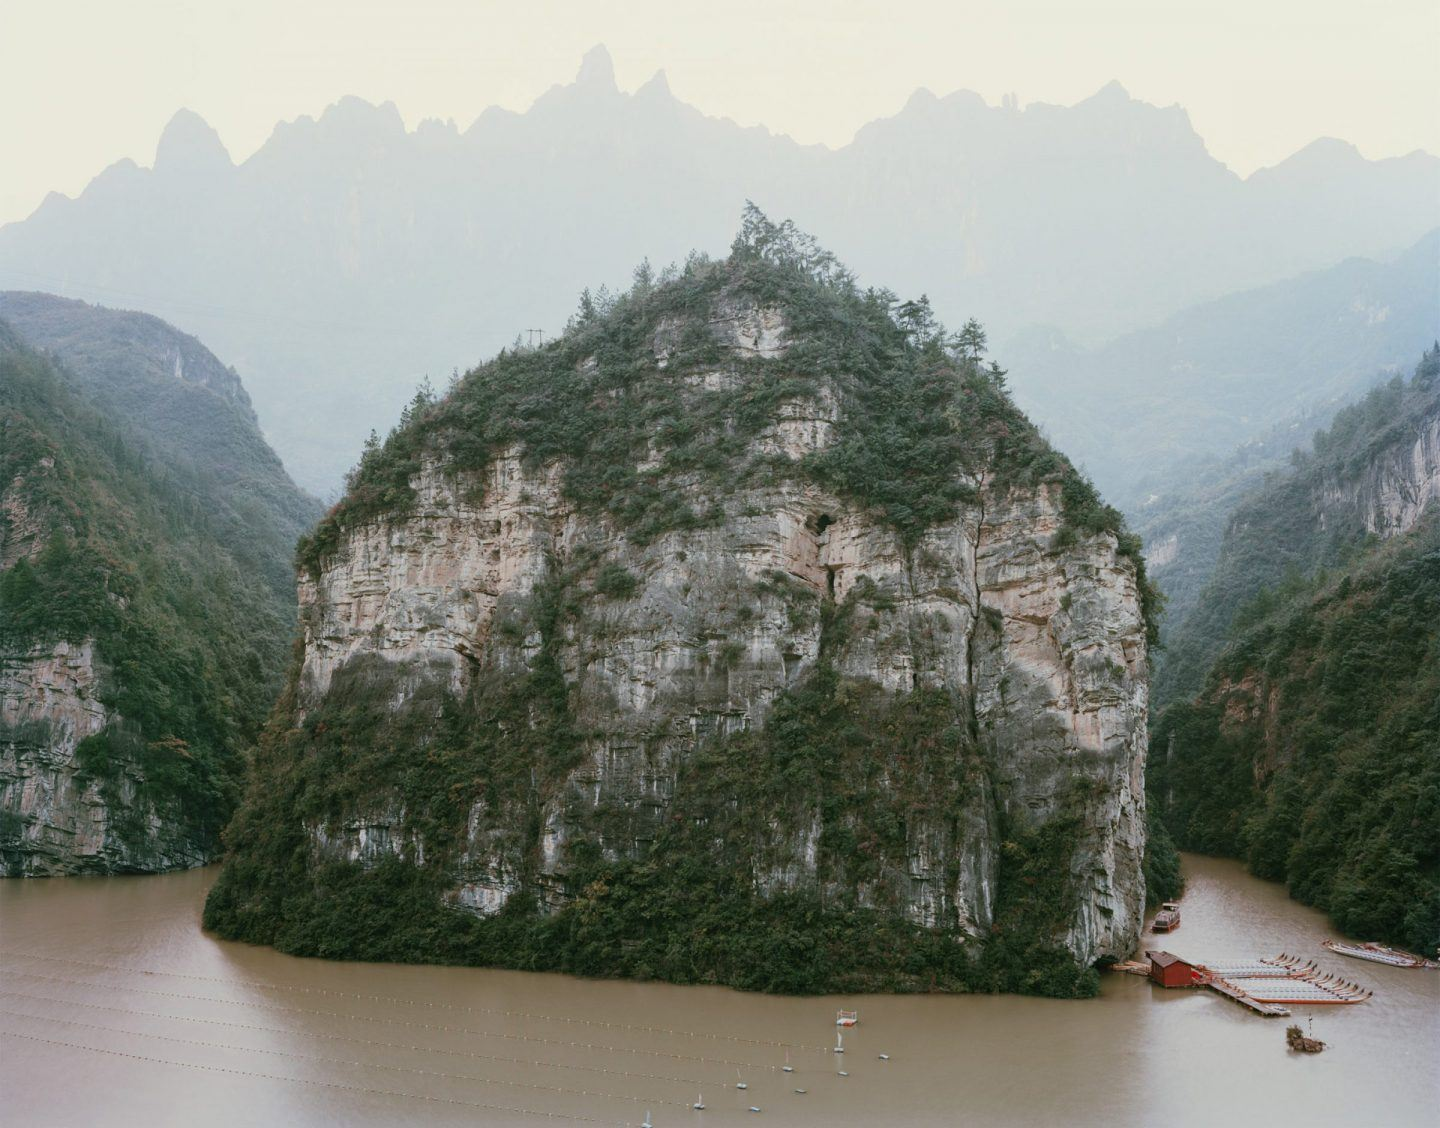 IGNANT-Photography-Nadav-Kander-Yangtze-The-Long-River-019